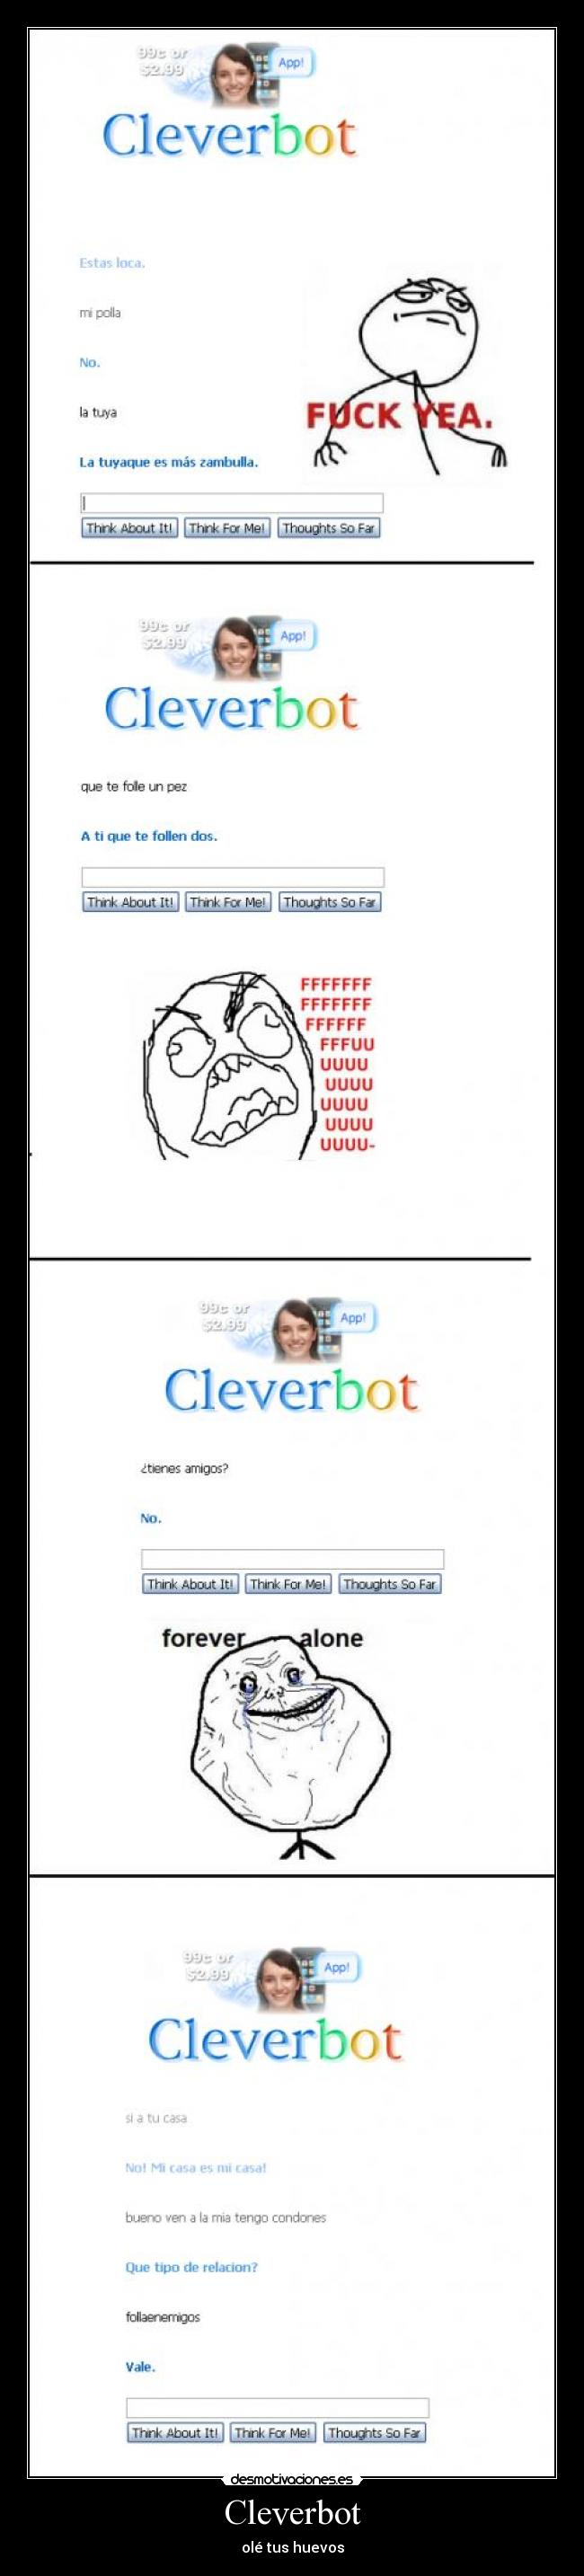 Cleverbot - olé tus huevos